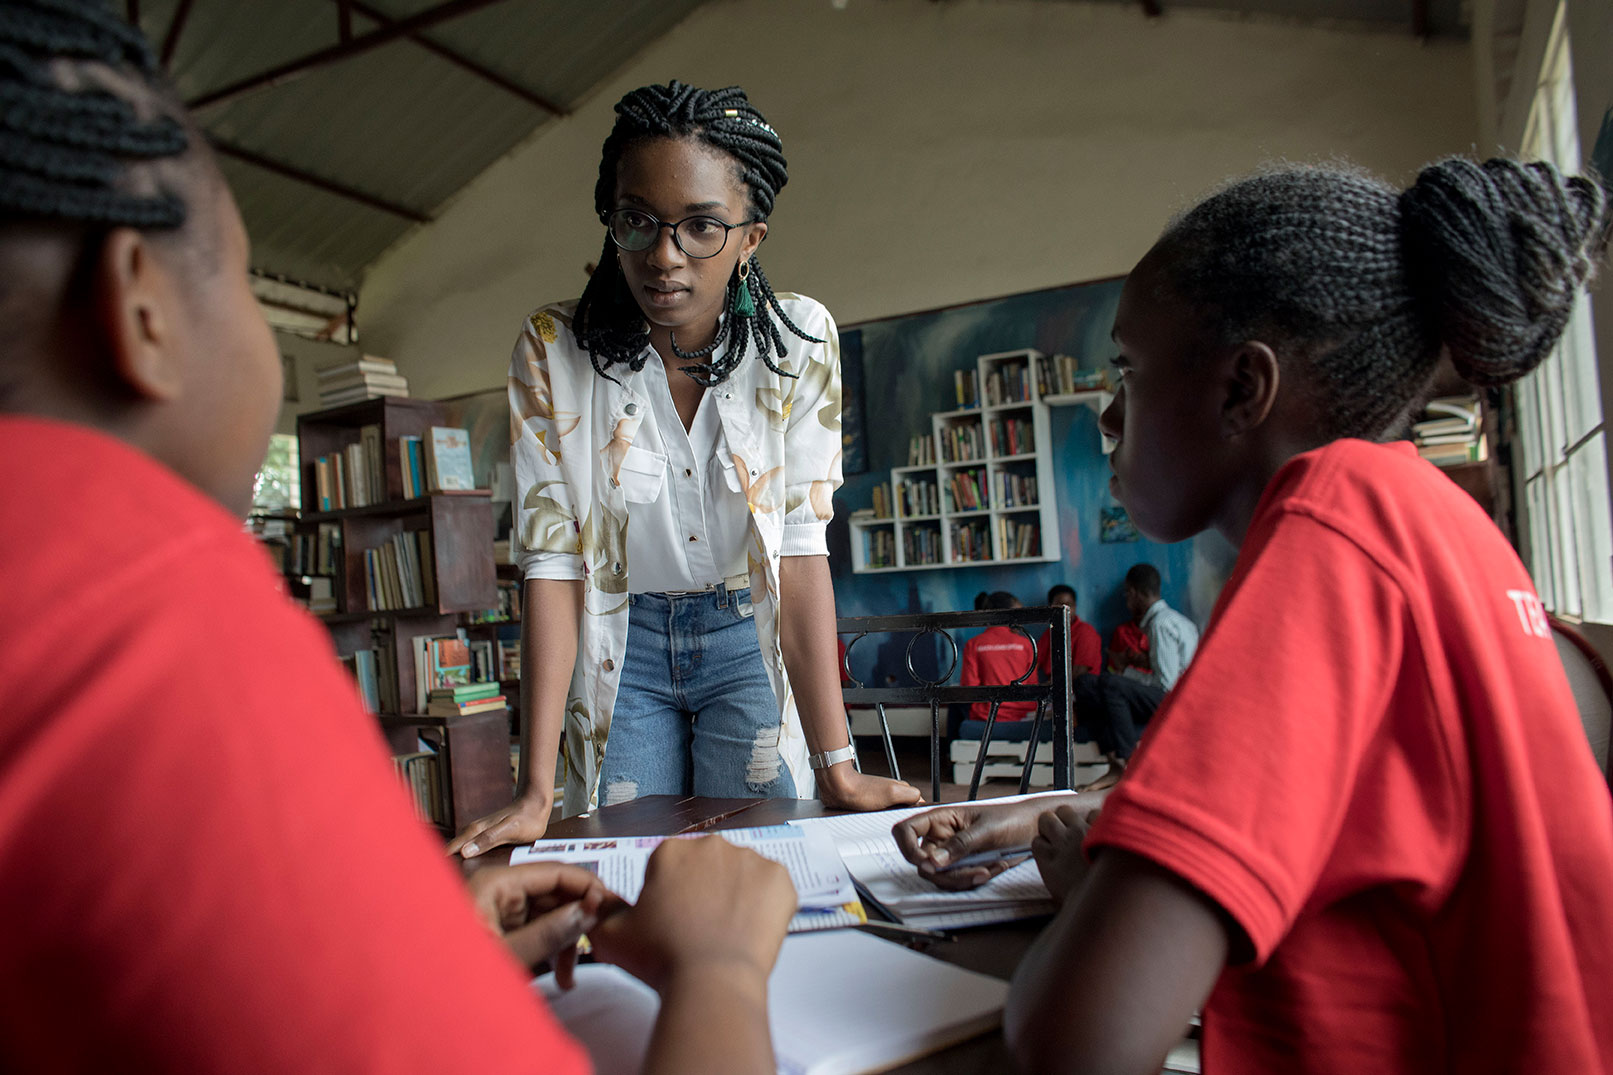 Dominique is committed to mentoring young girls.